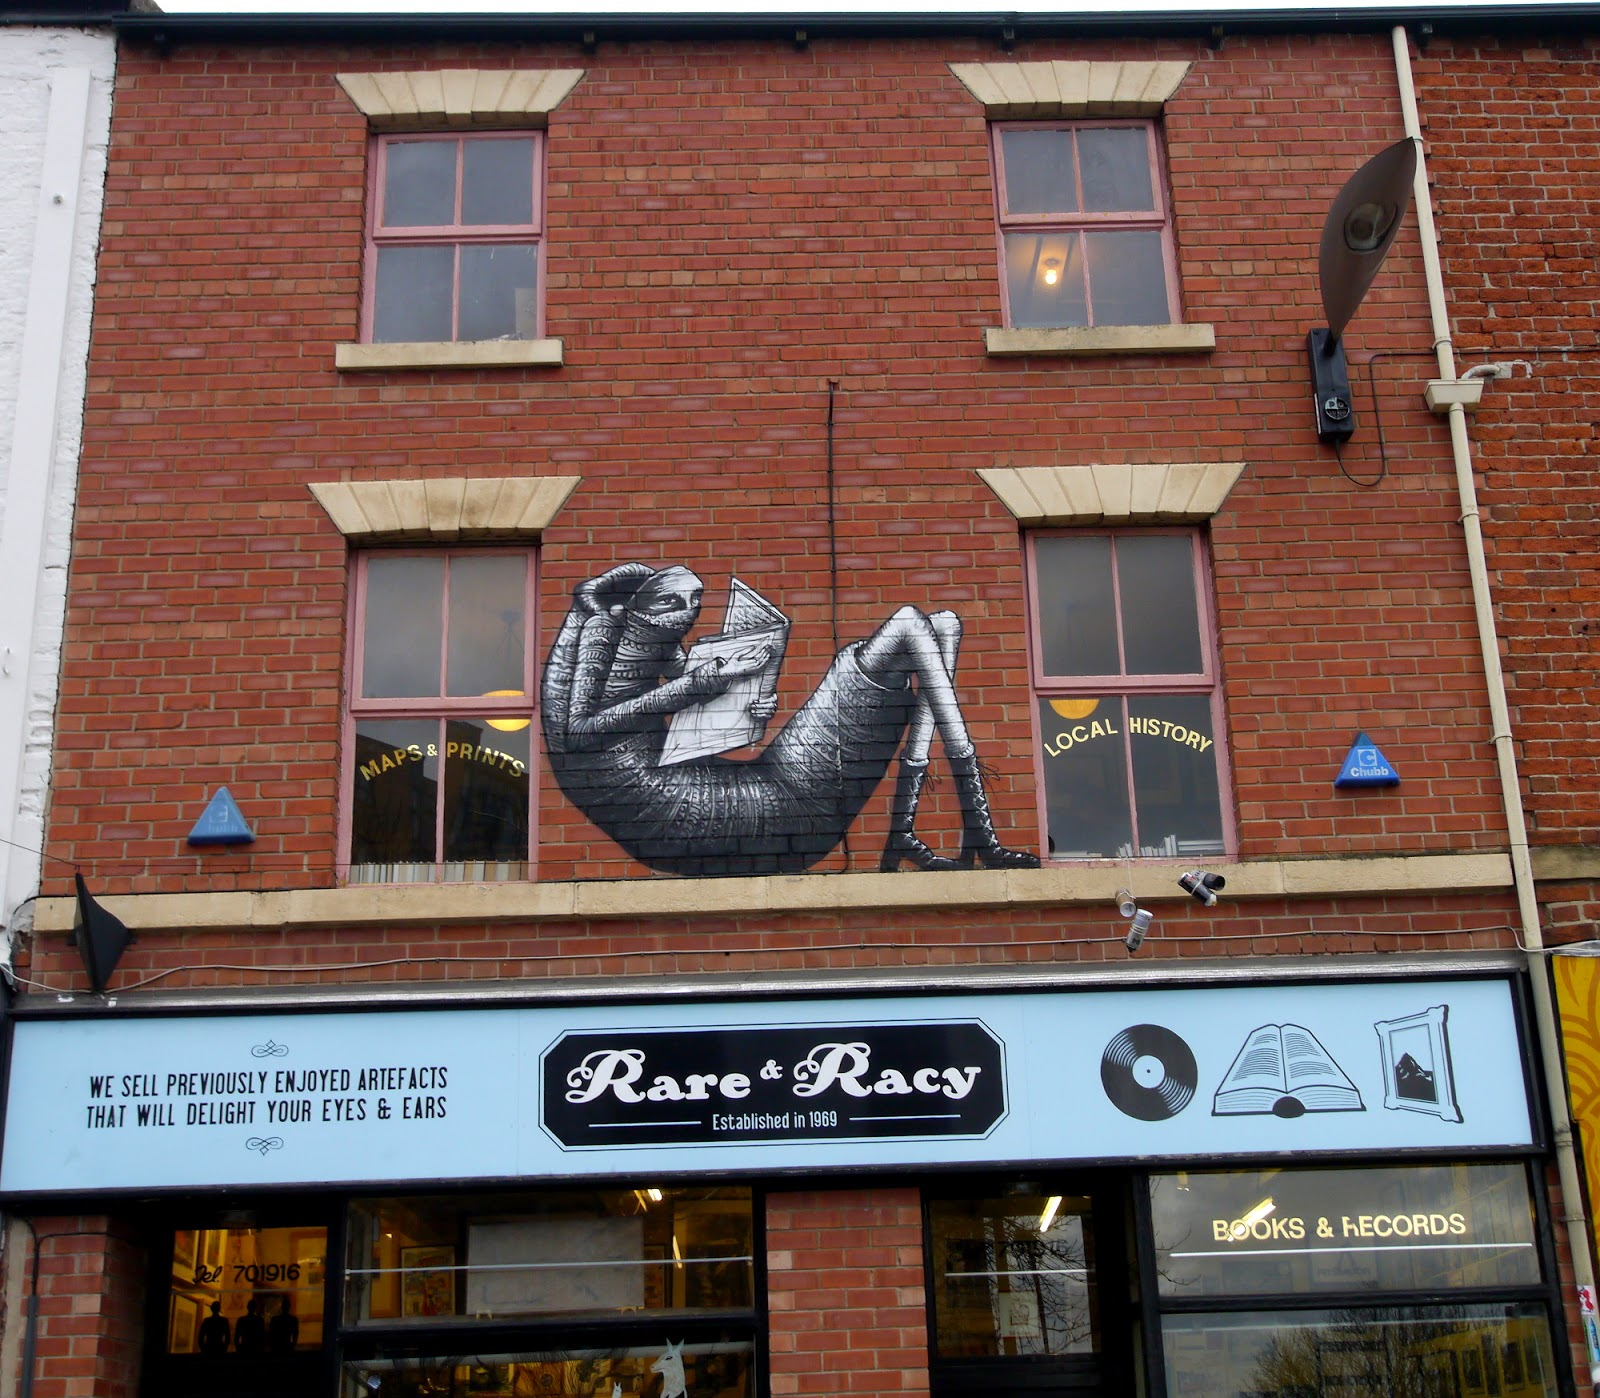 phlegm-rare-and-racy-new-mural-in-sheffield-01